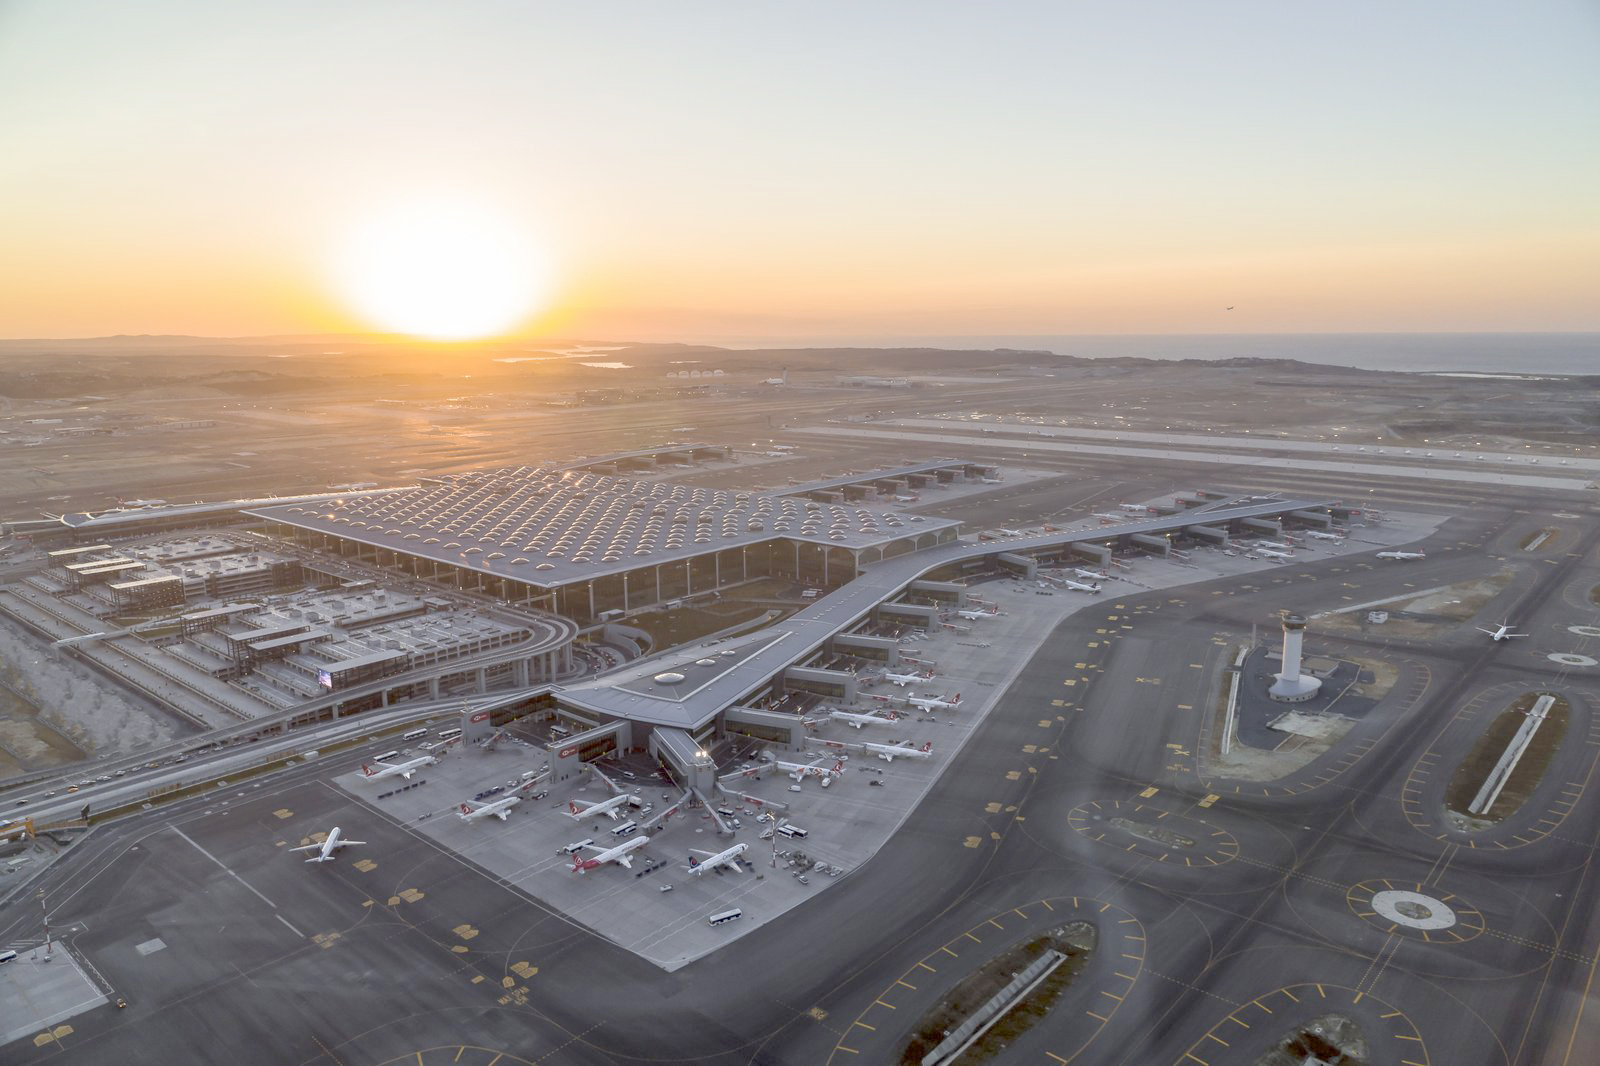 Istanbul airport cements global hub ambitions with third runway